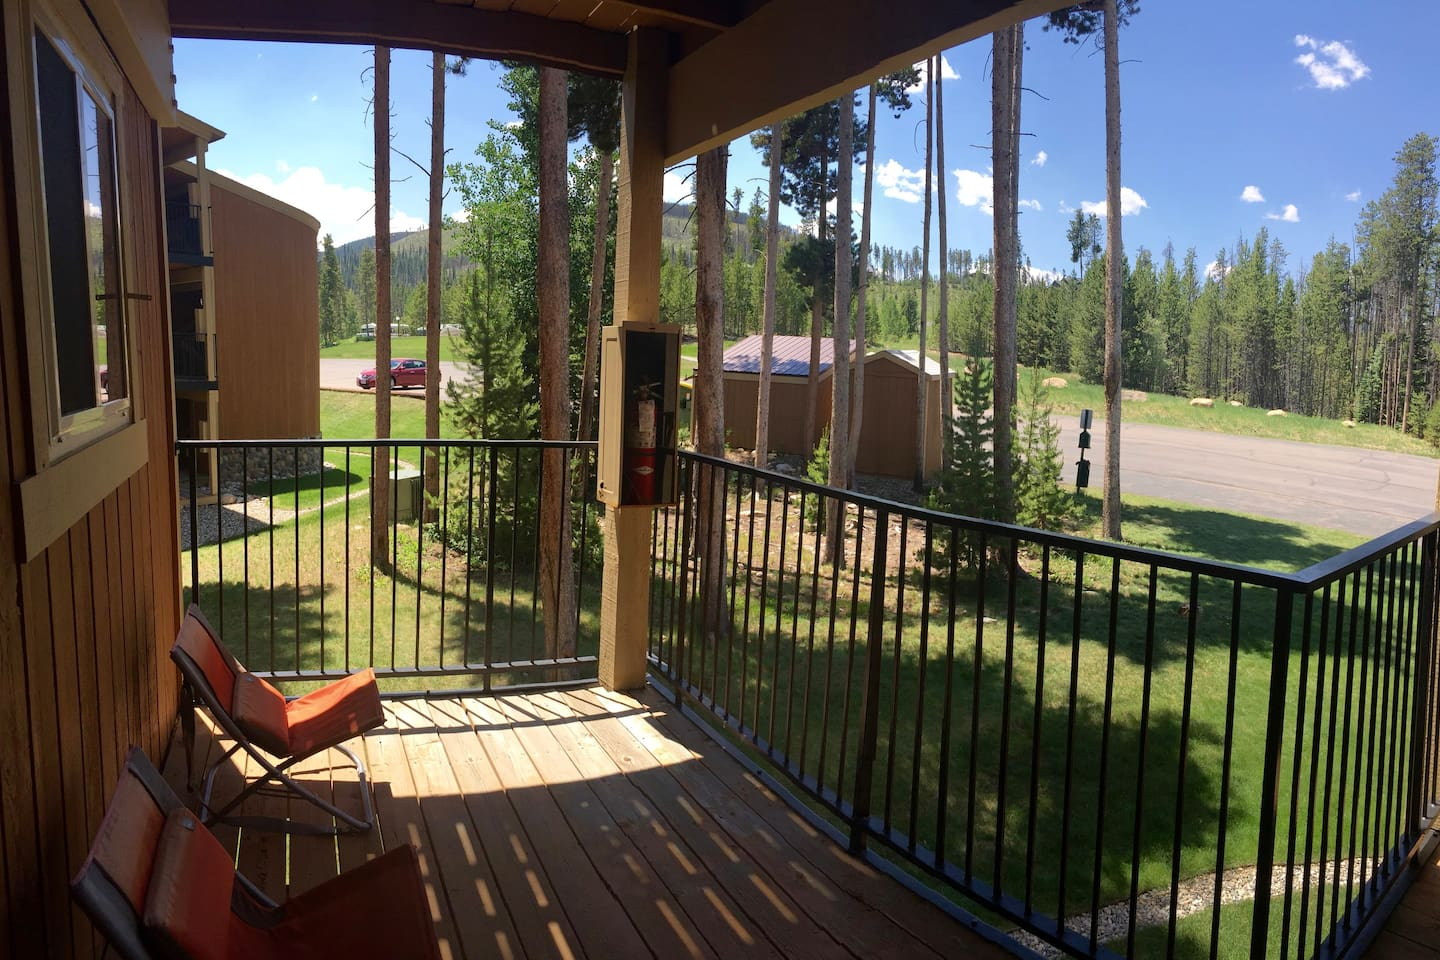 Front deck view - super quiet and peaceful.